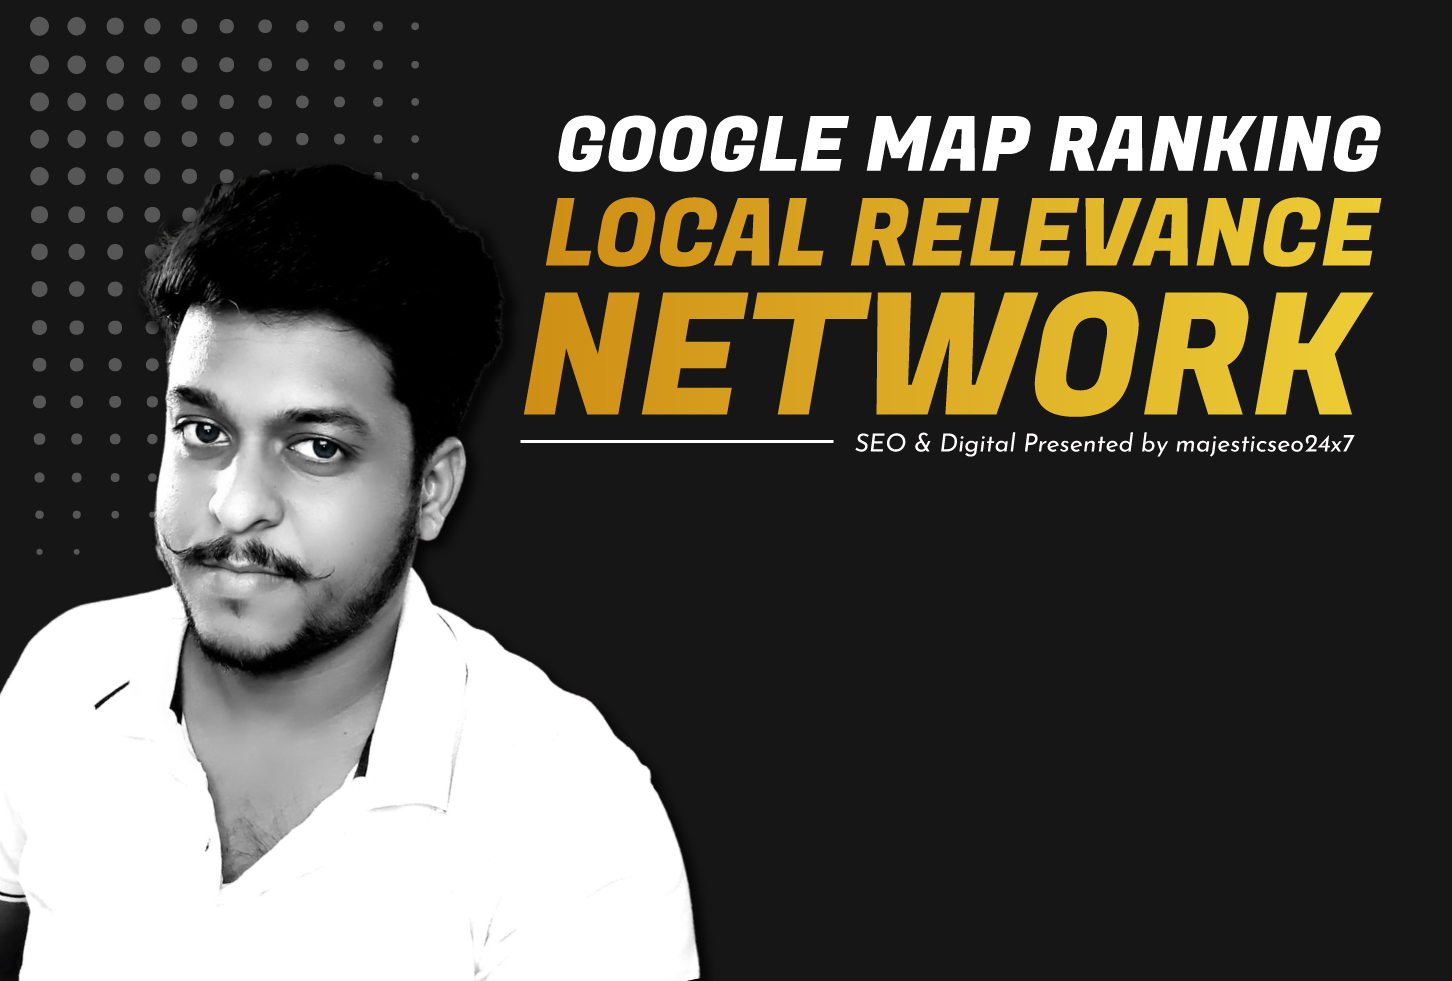 10 LOCAL RELAVANCE NETWORK 2021 SPECIAL